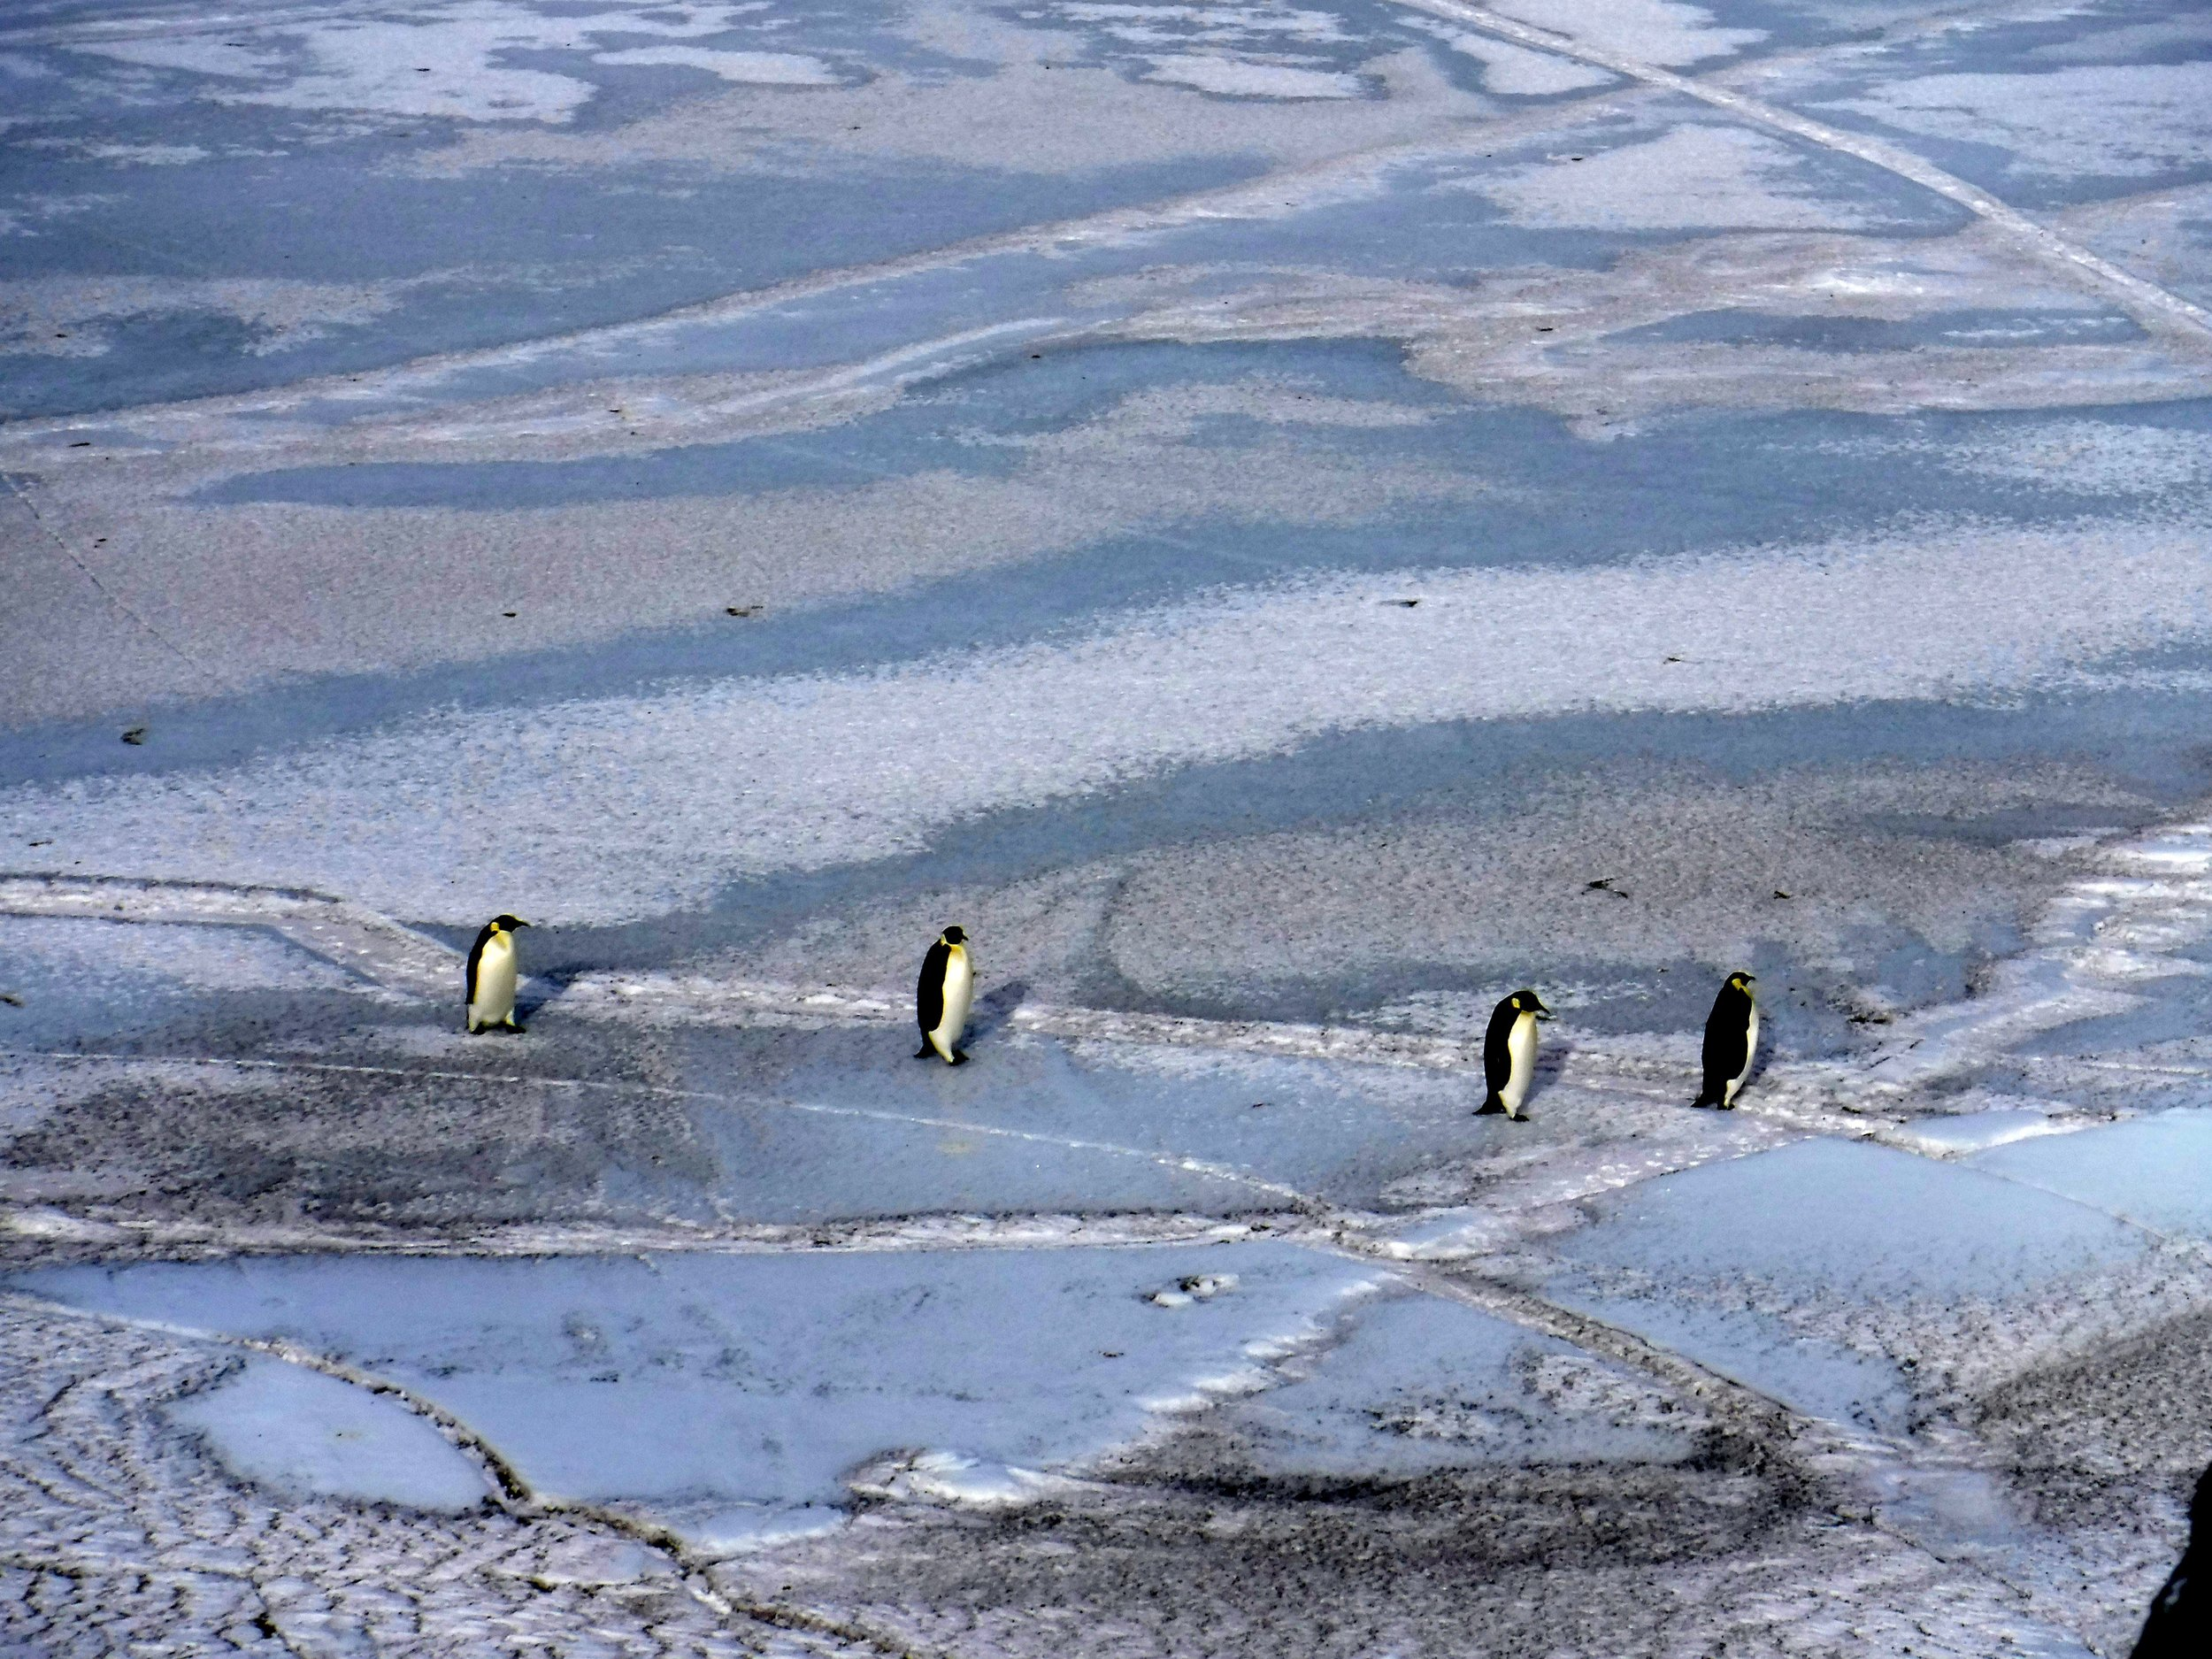 Emperor penguins on the sea ice. Photo credit: Caitlin Scarano.